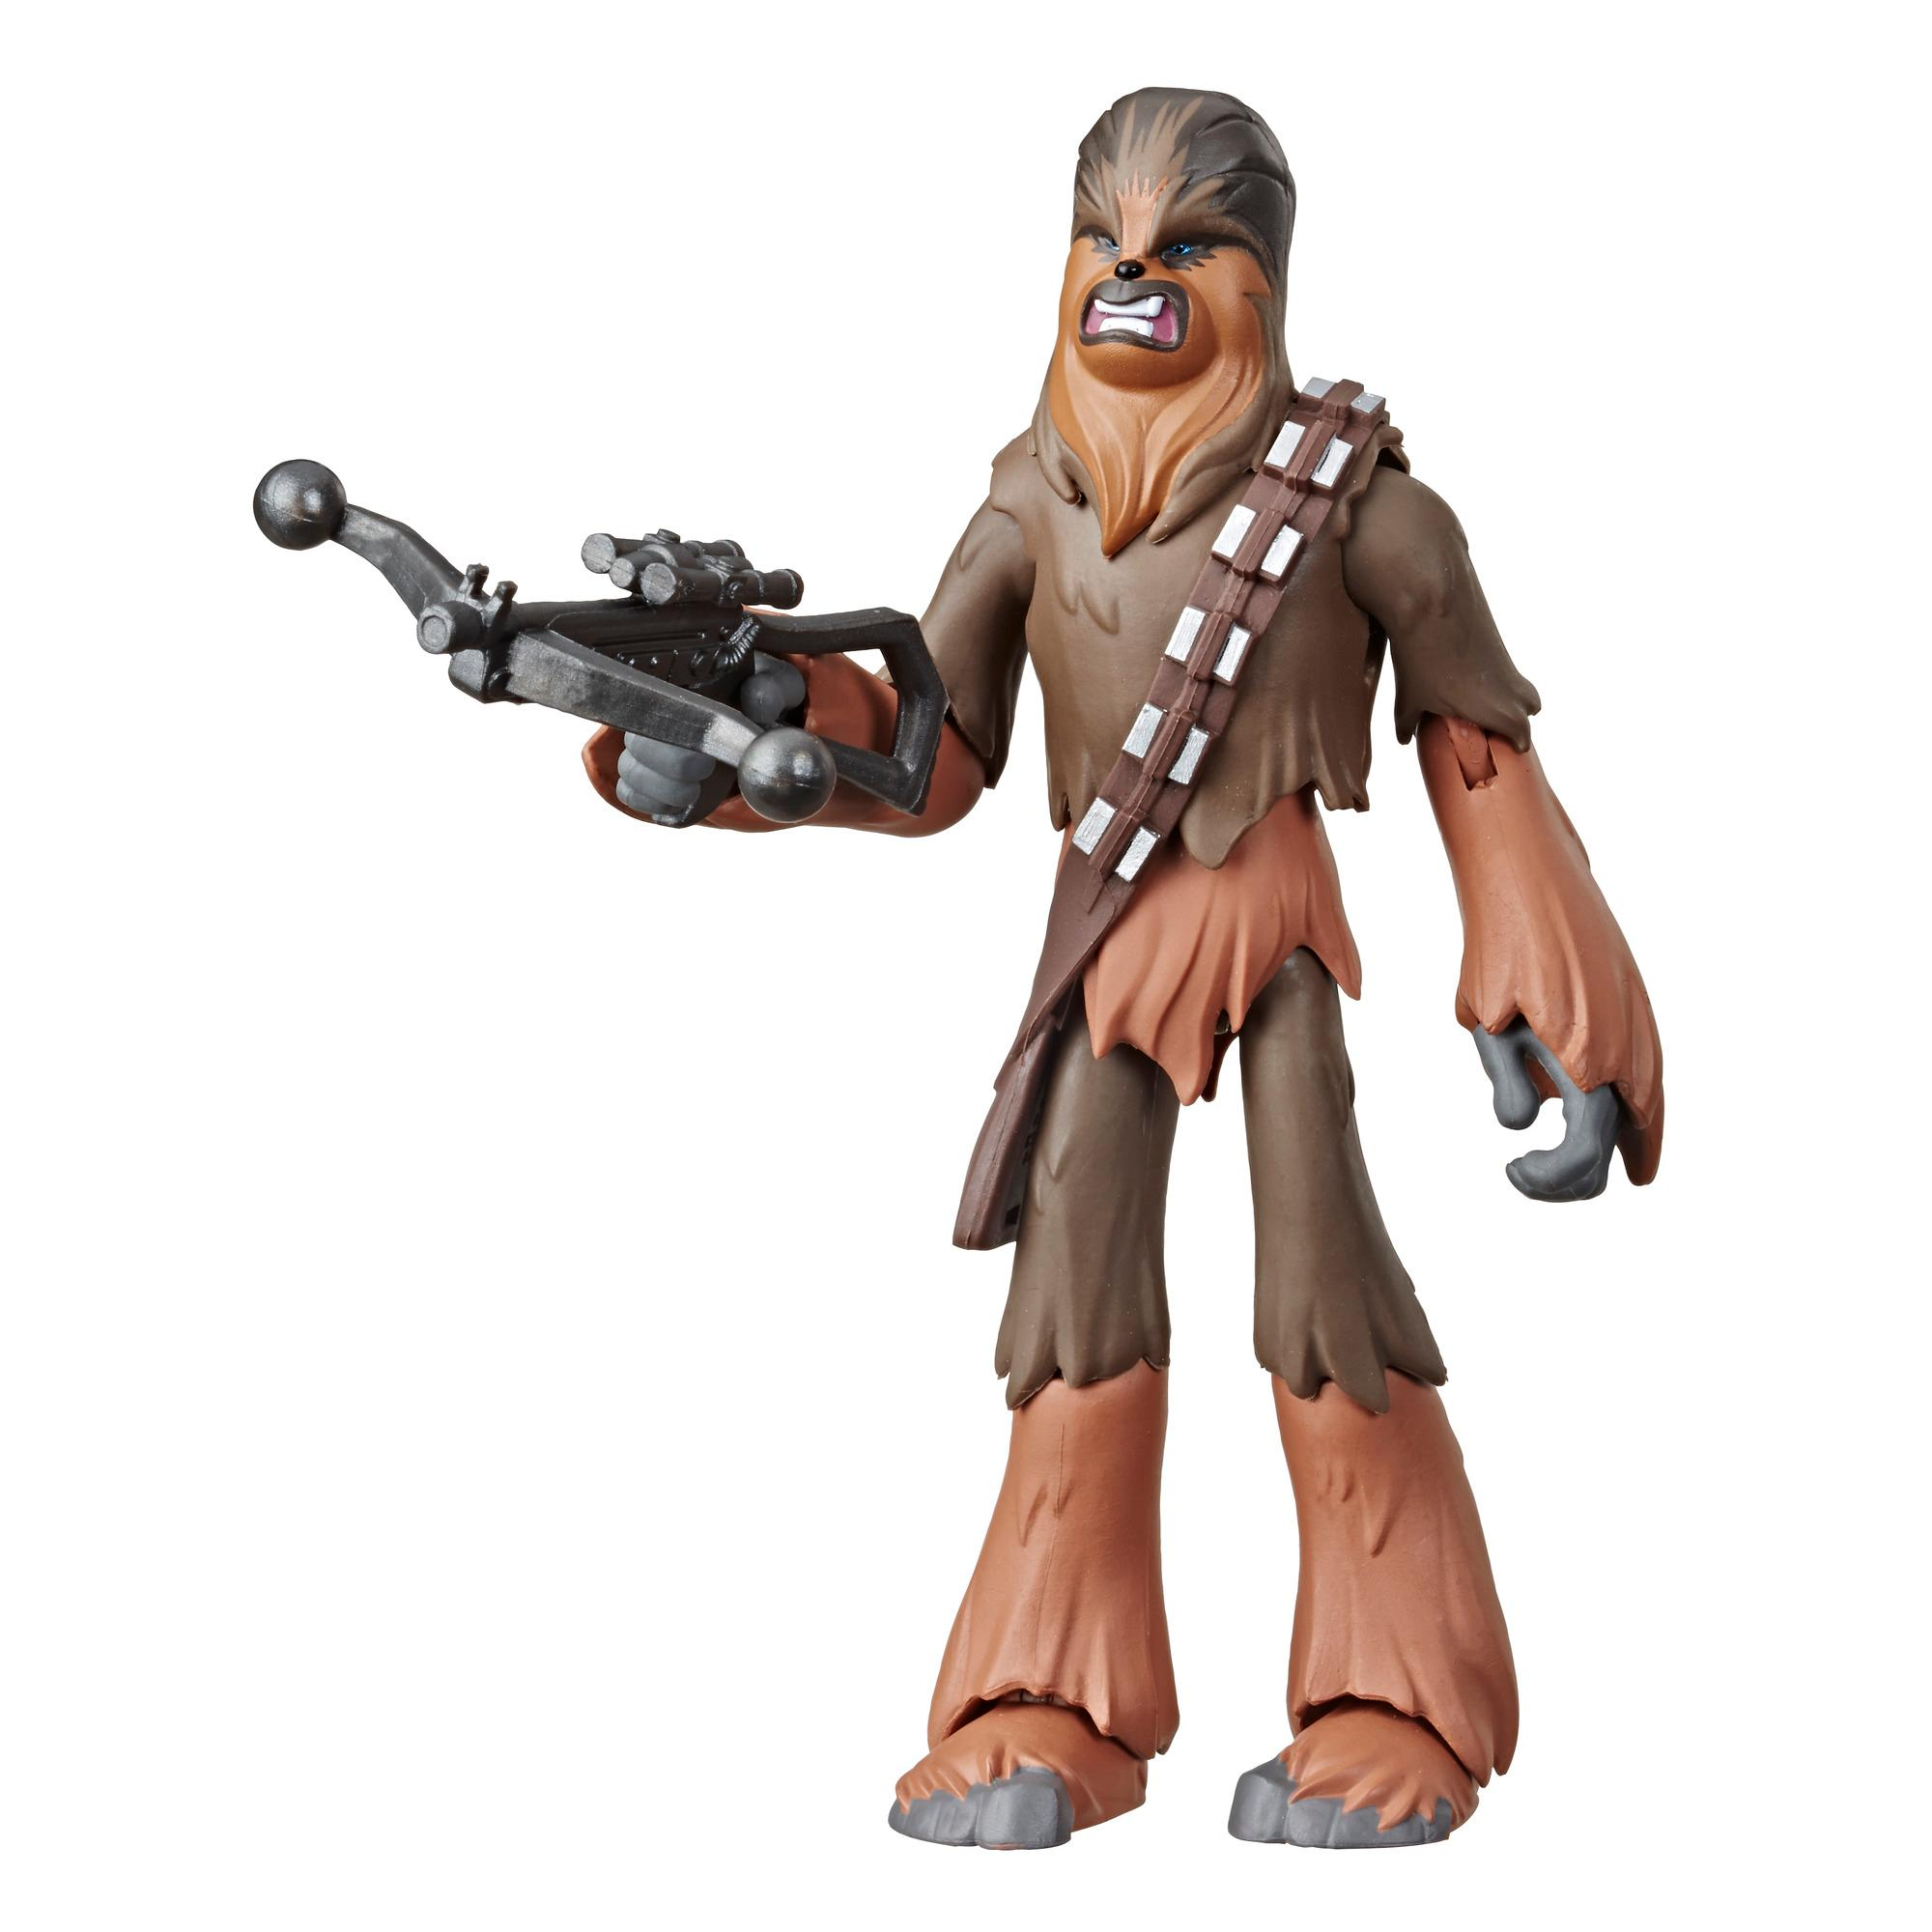 STAR WARS FIGURAS PERSONAGENS EPISÓDIO 9 CHEWBACCA